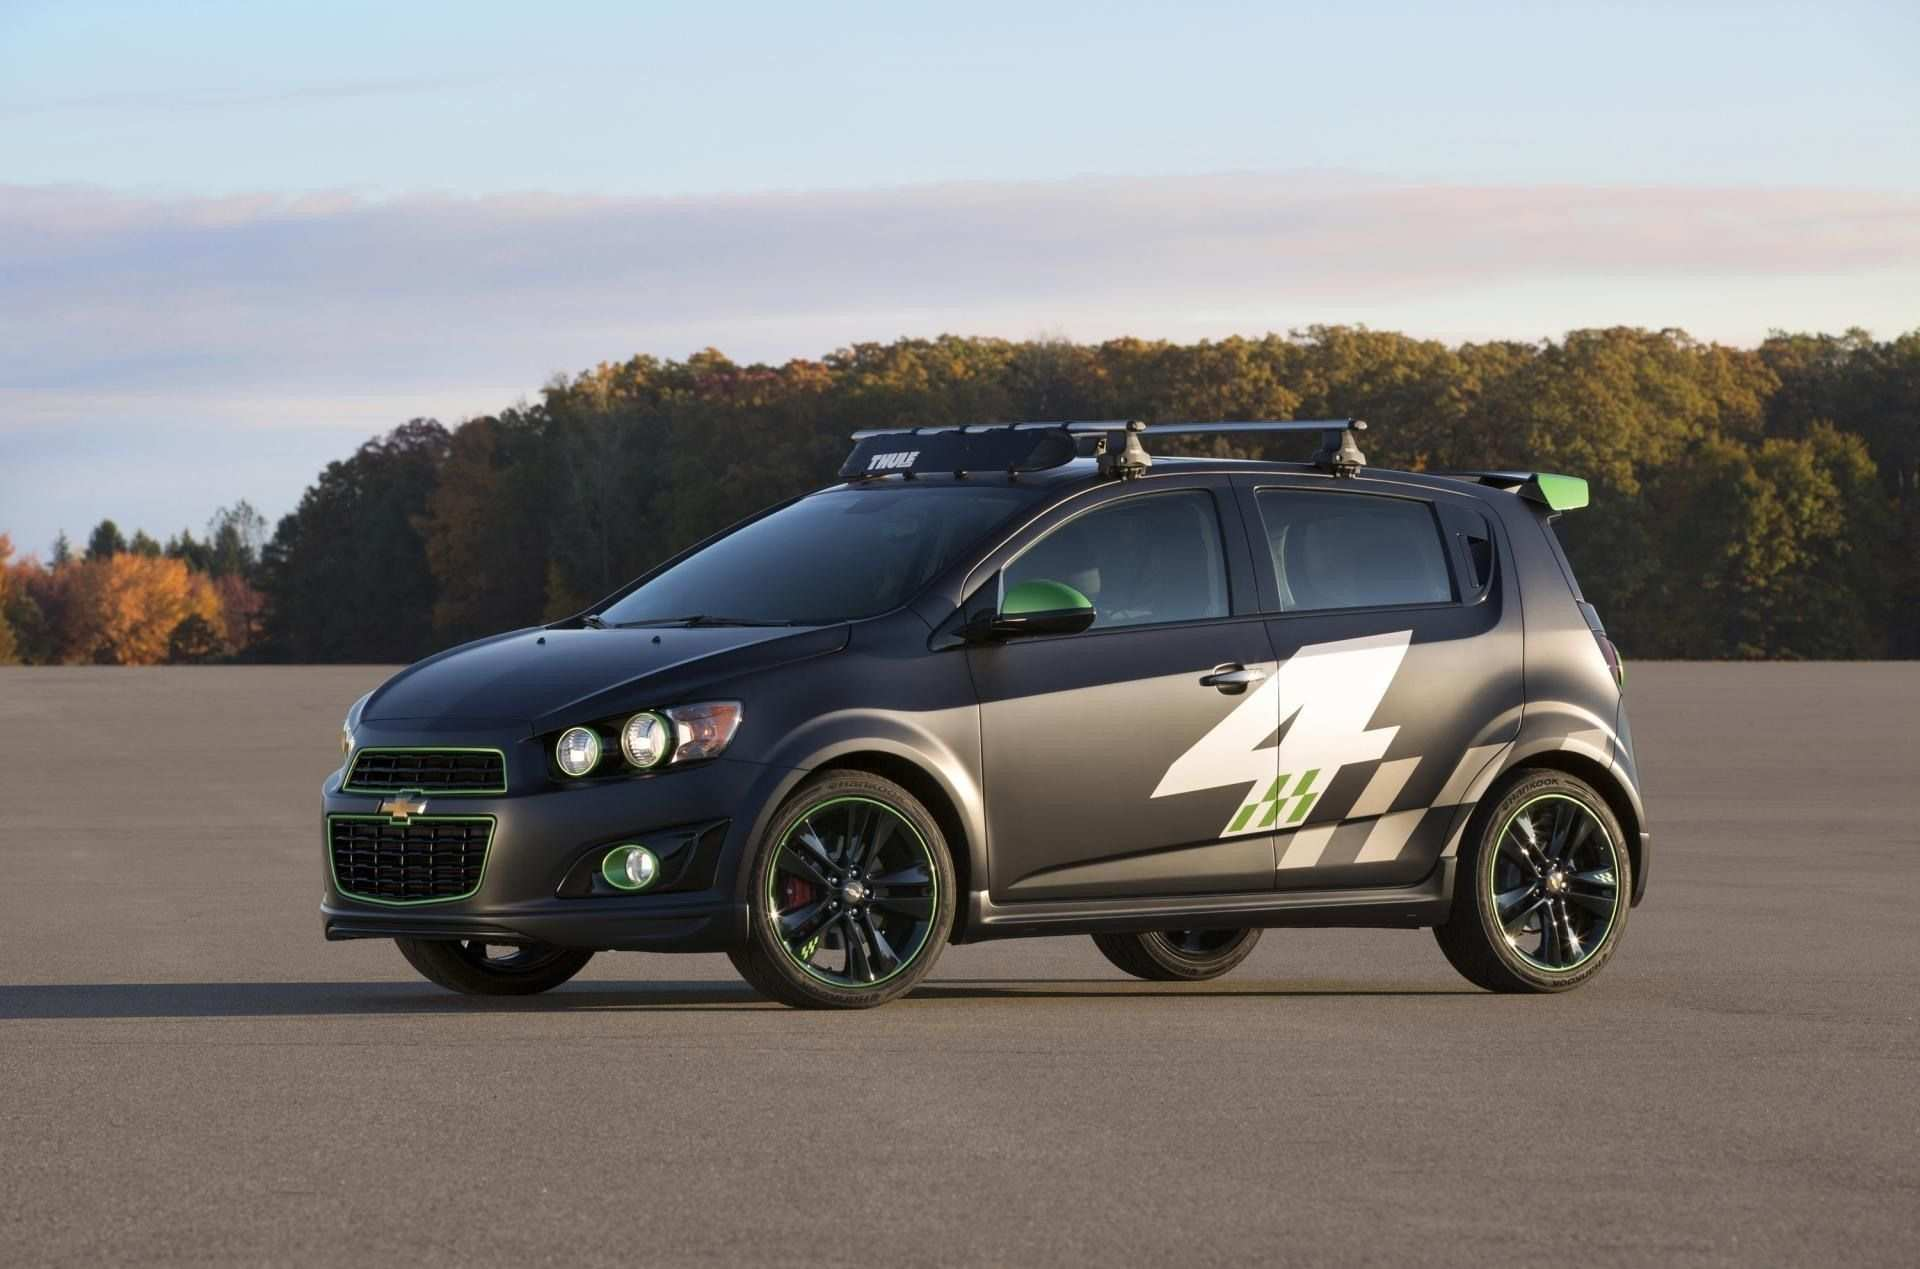 71 All New 2020 Chevy Sonic Ss Ev Rs Configurations